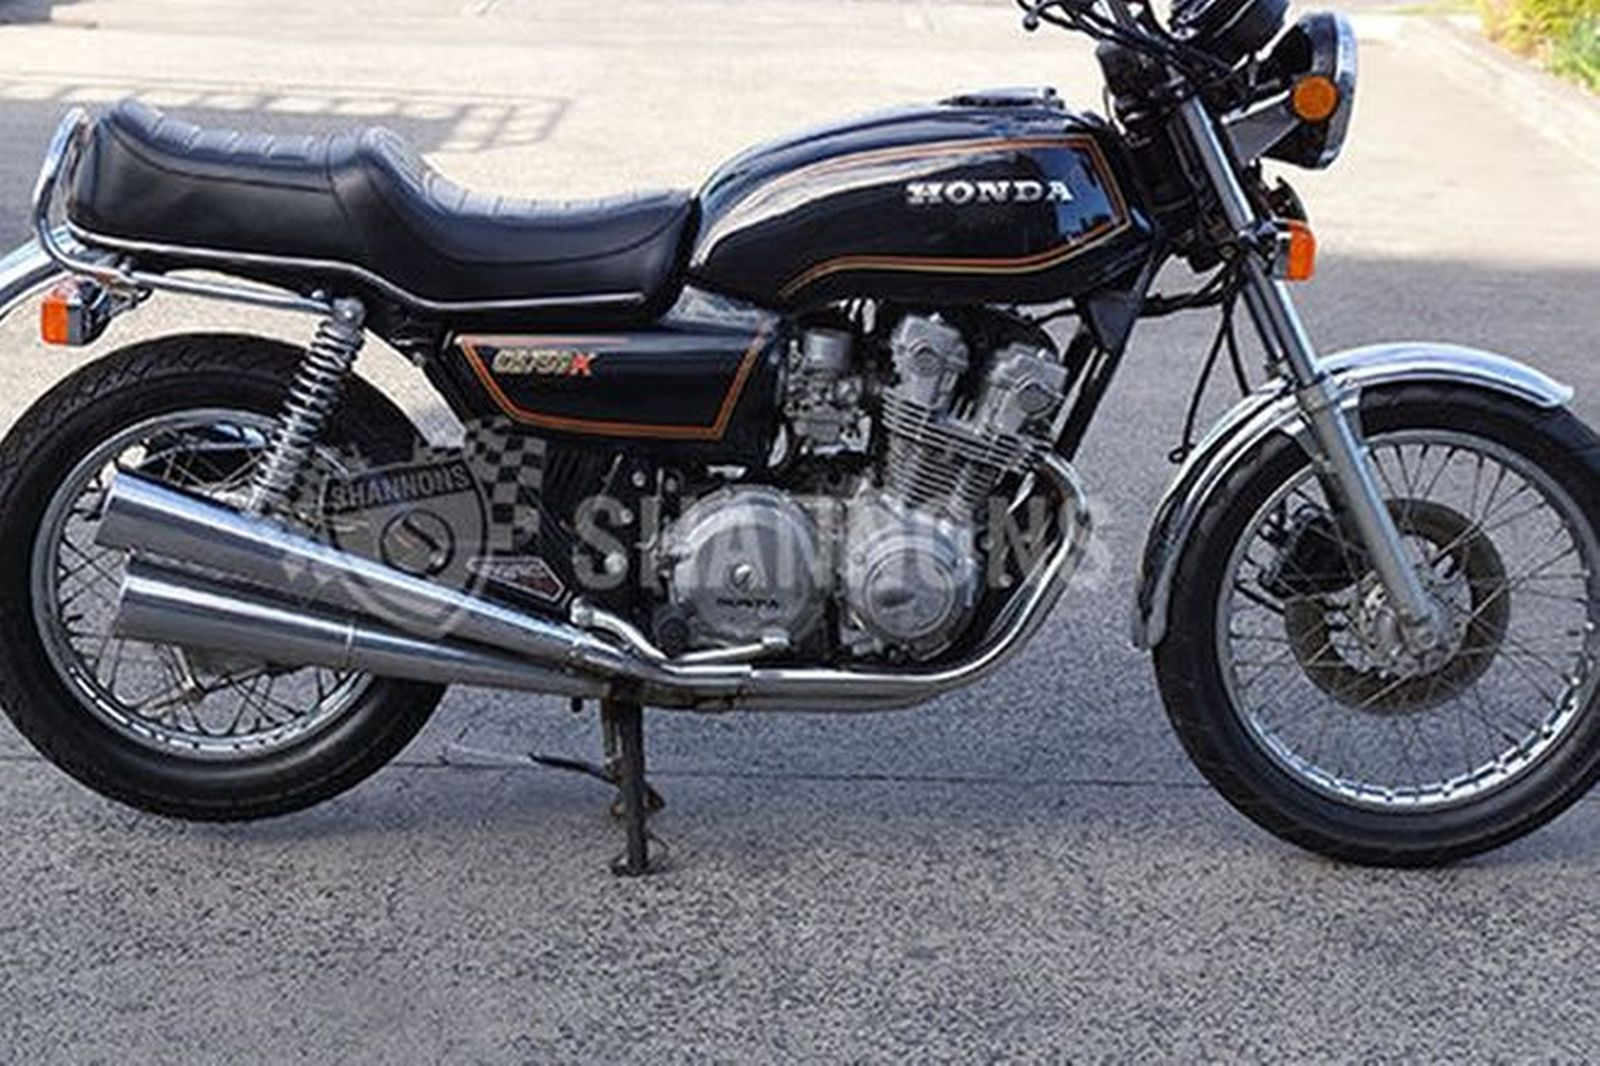 Sold  Honda Cb750k Motorcycle Auctions - Lot 7